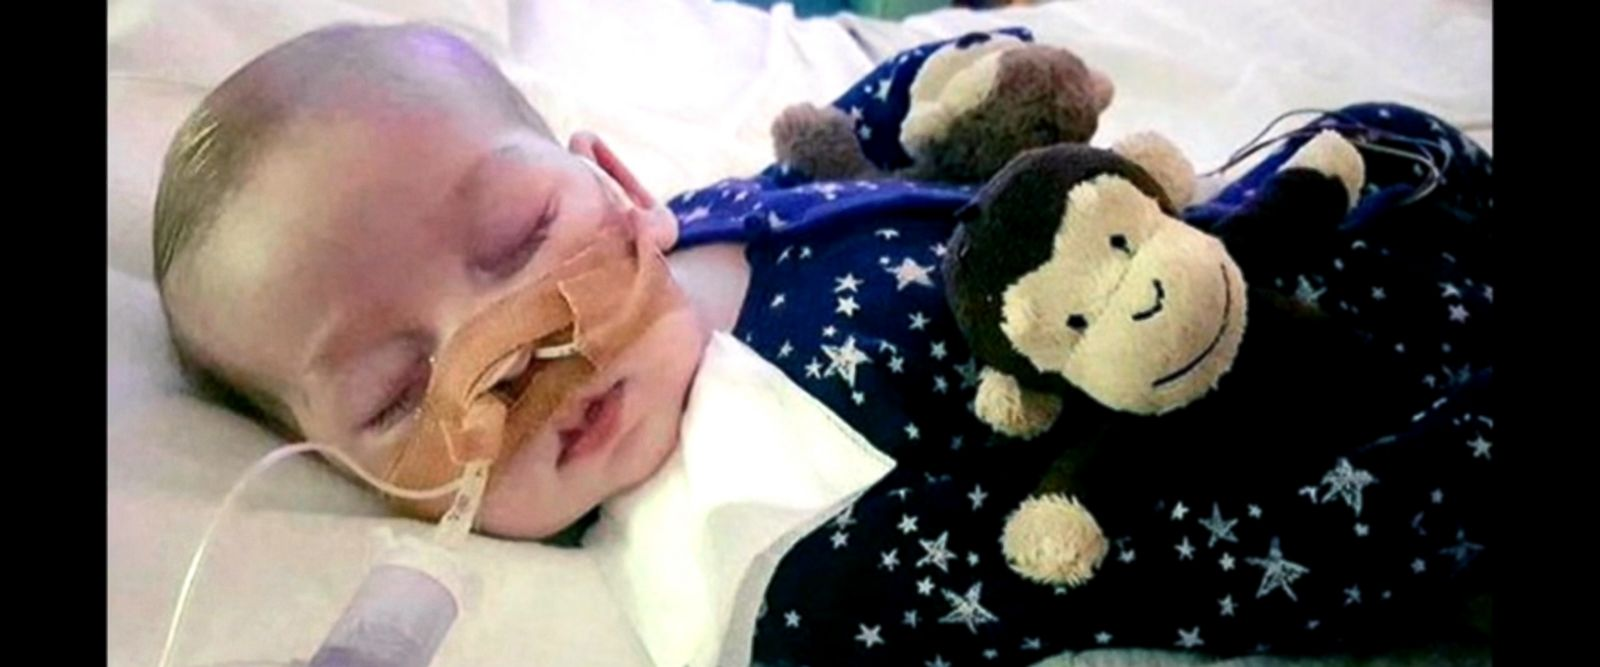 VIDEO: Terminally ill British infant Charlie Gard, whose parents' fight for his life drew worldwide attention, has died, according to a family spokesperson.